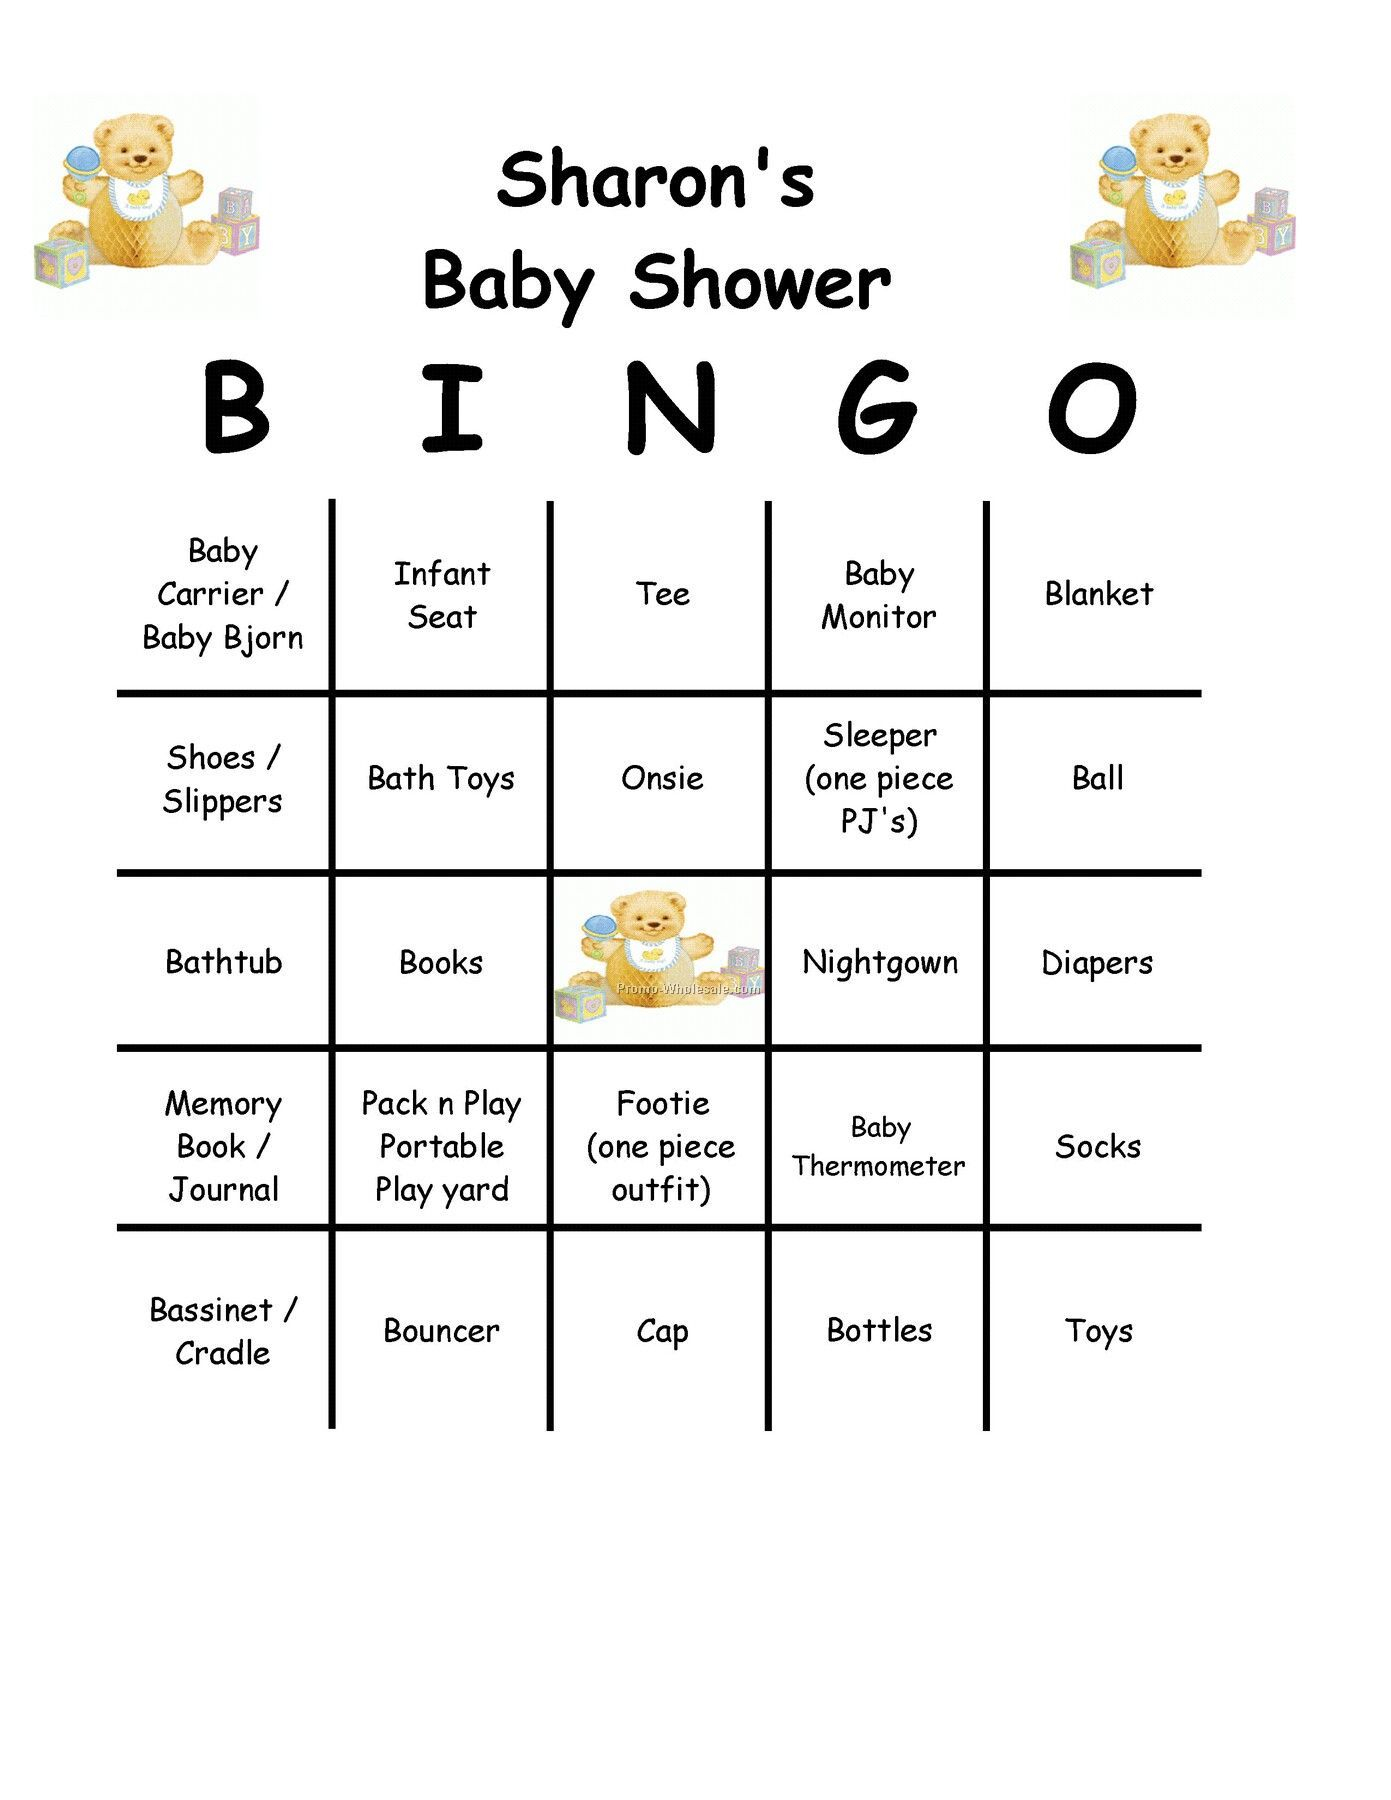 Photo : 7C33111211A686030De111057A3C87 Free Printable Minnie Image - Free Printable Baby Shower Games In Spanish